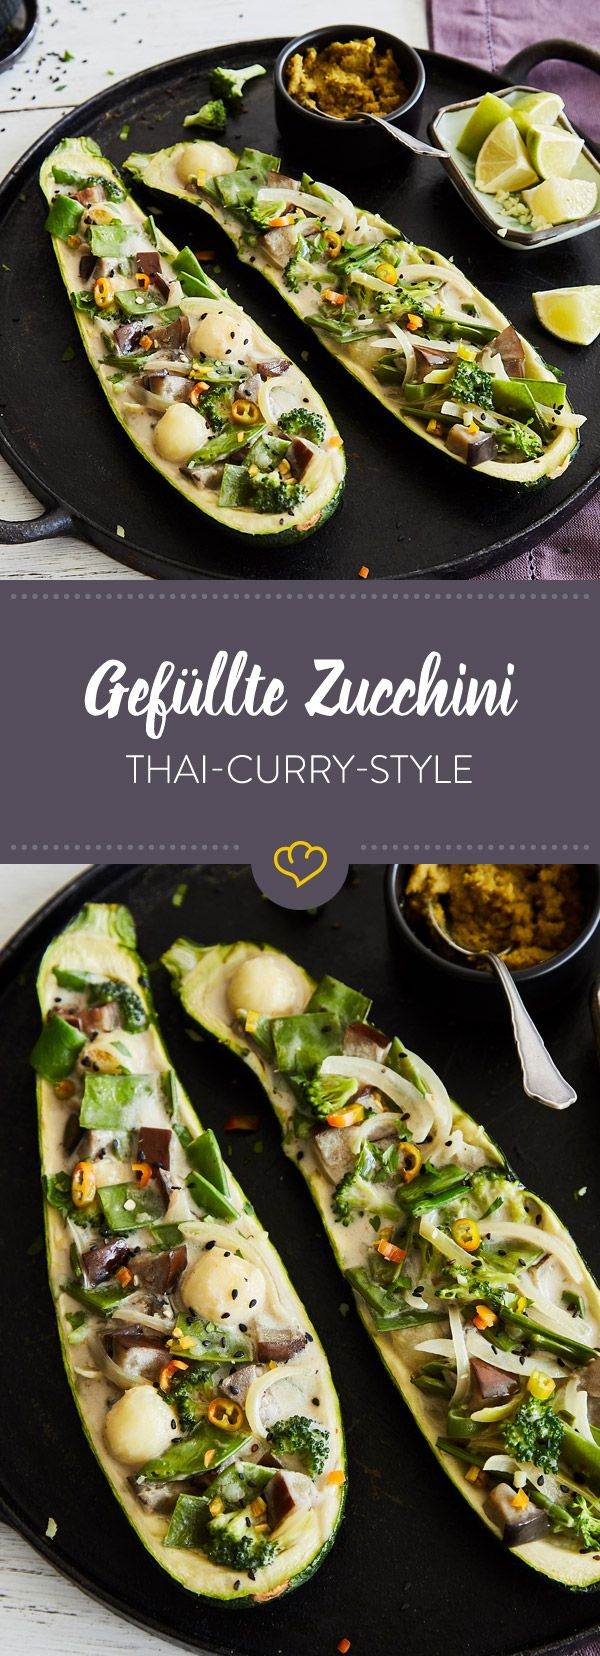 vegetarisch gef llte zucchini thai curry style rezept food pinterest. Black Bedroom Furniture Sets. Home Design Ideas